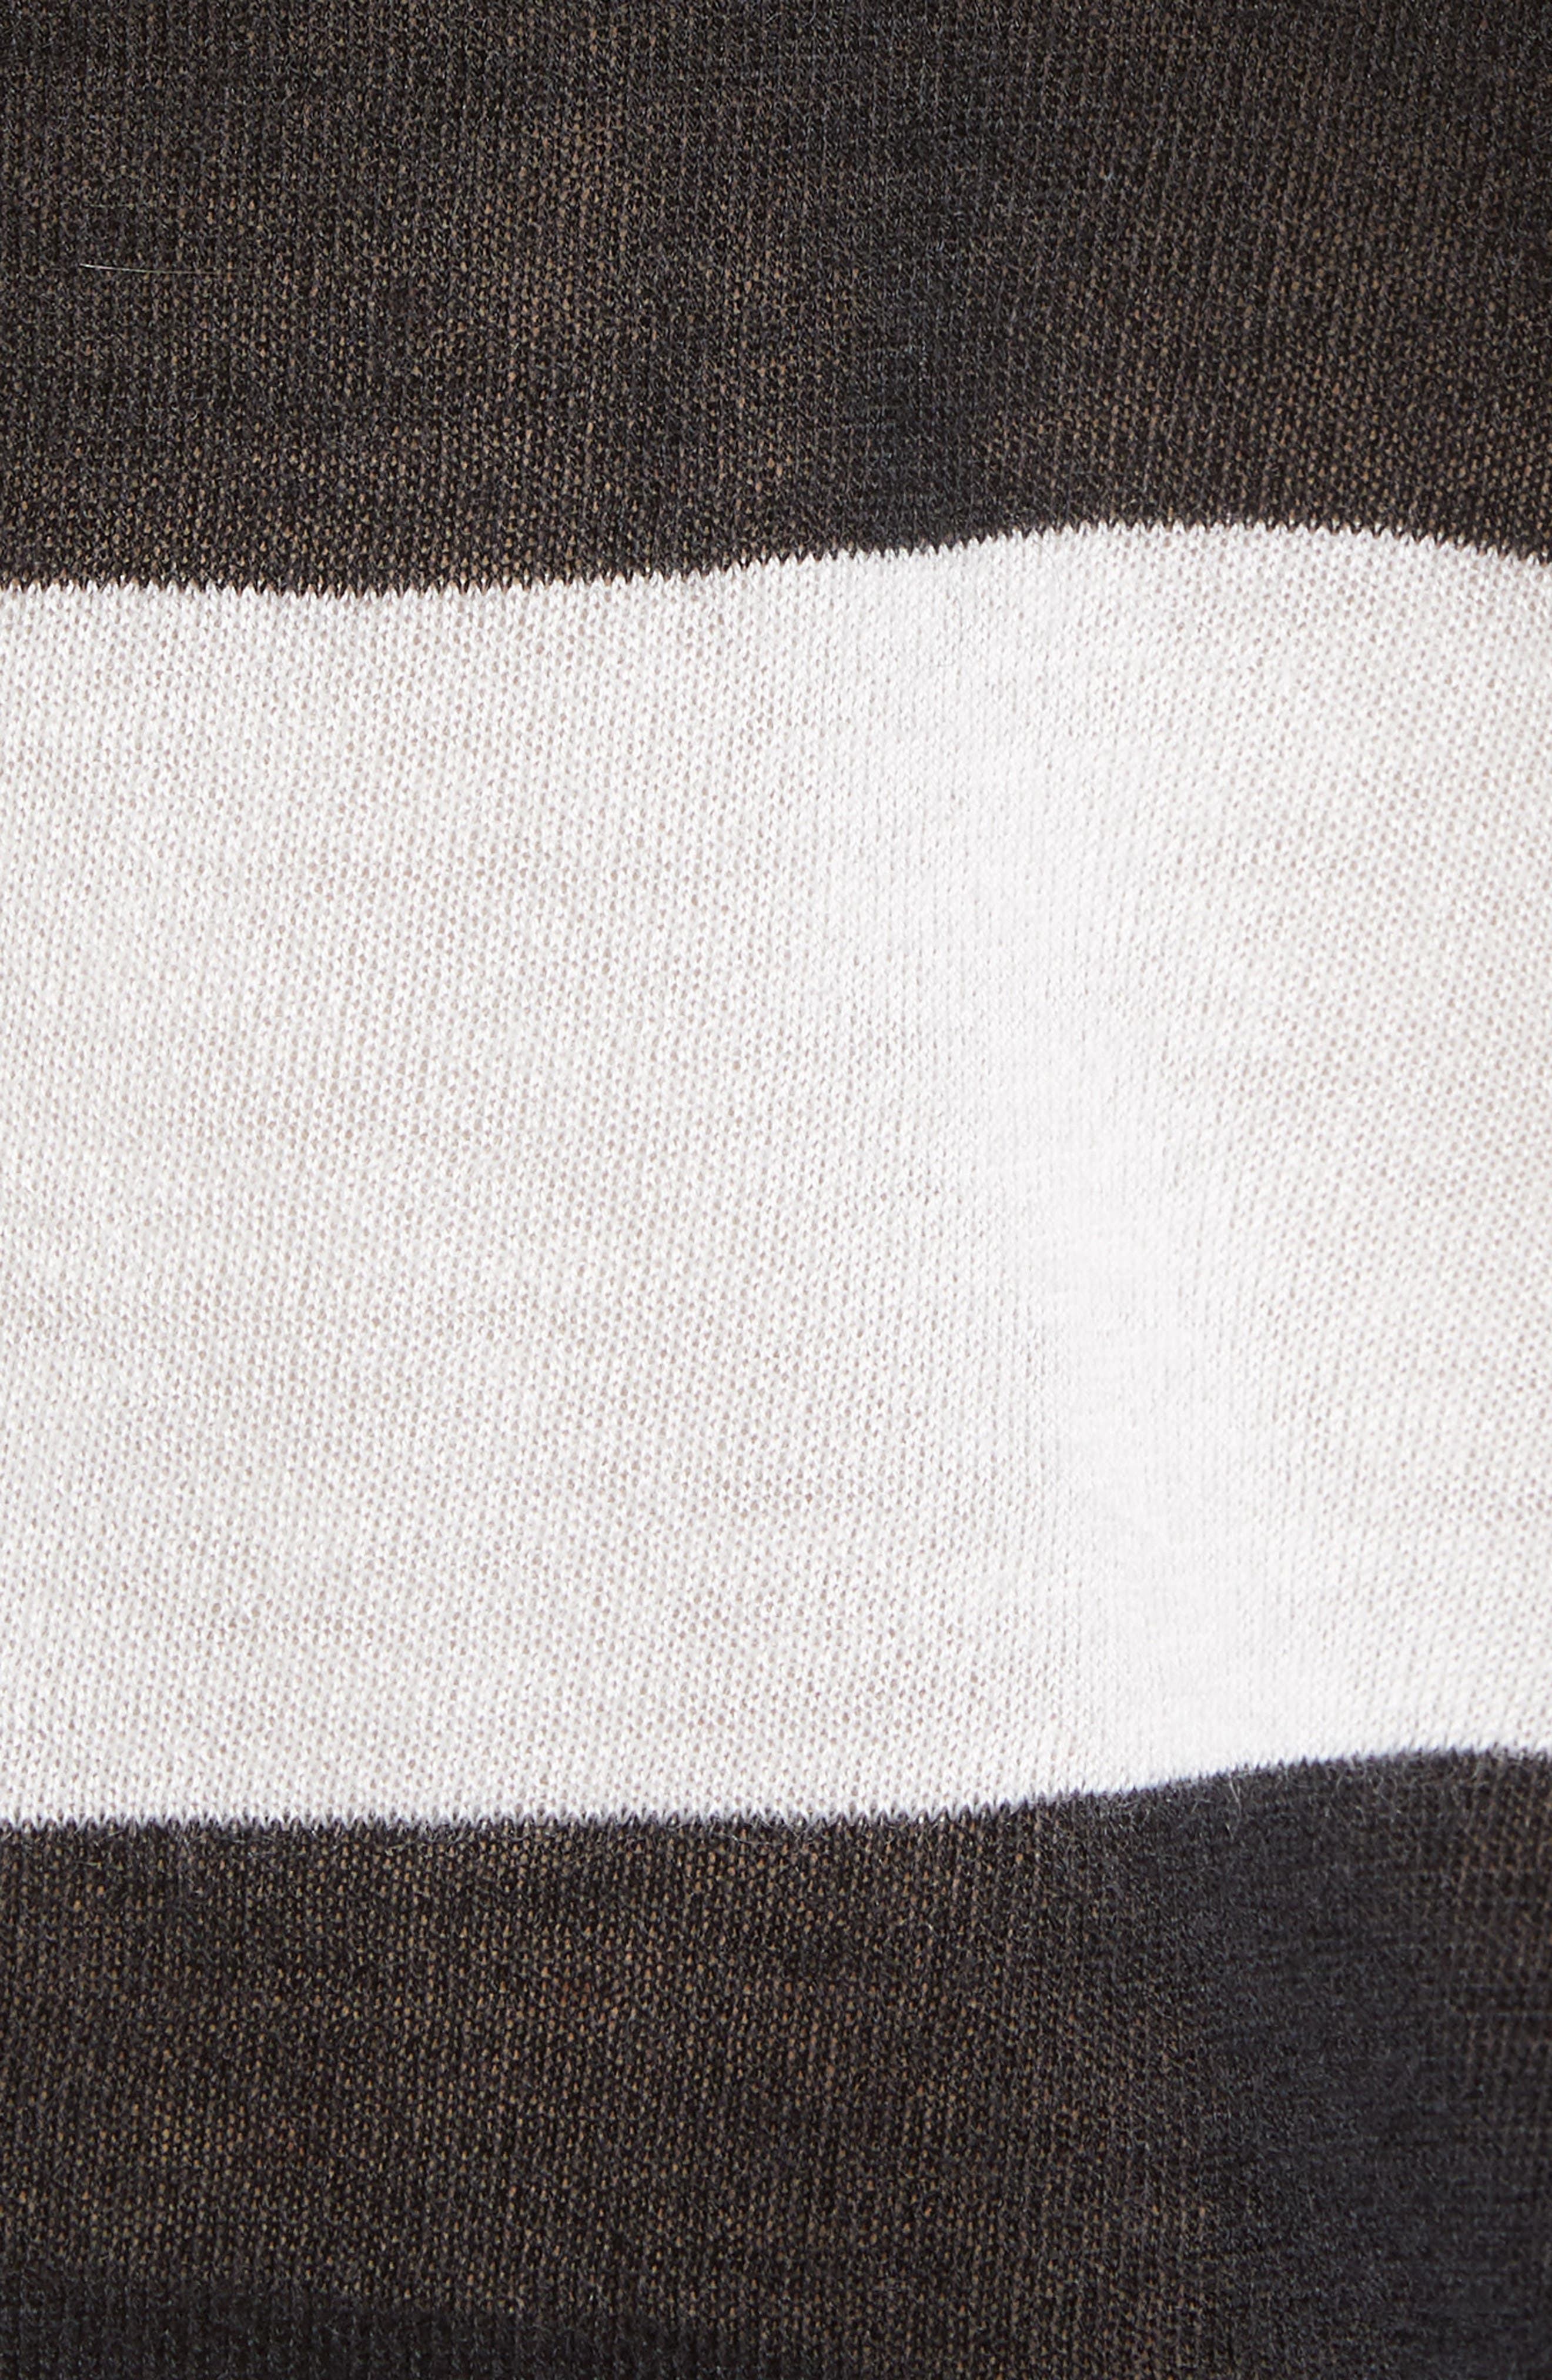 Source Stripe Cashmere Sweater,                             Alternate thumbnail 5, color,                             001